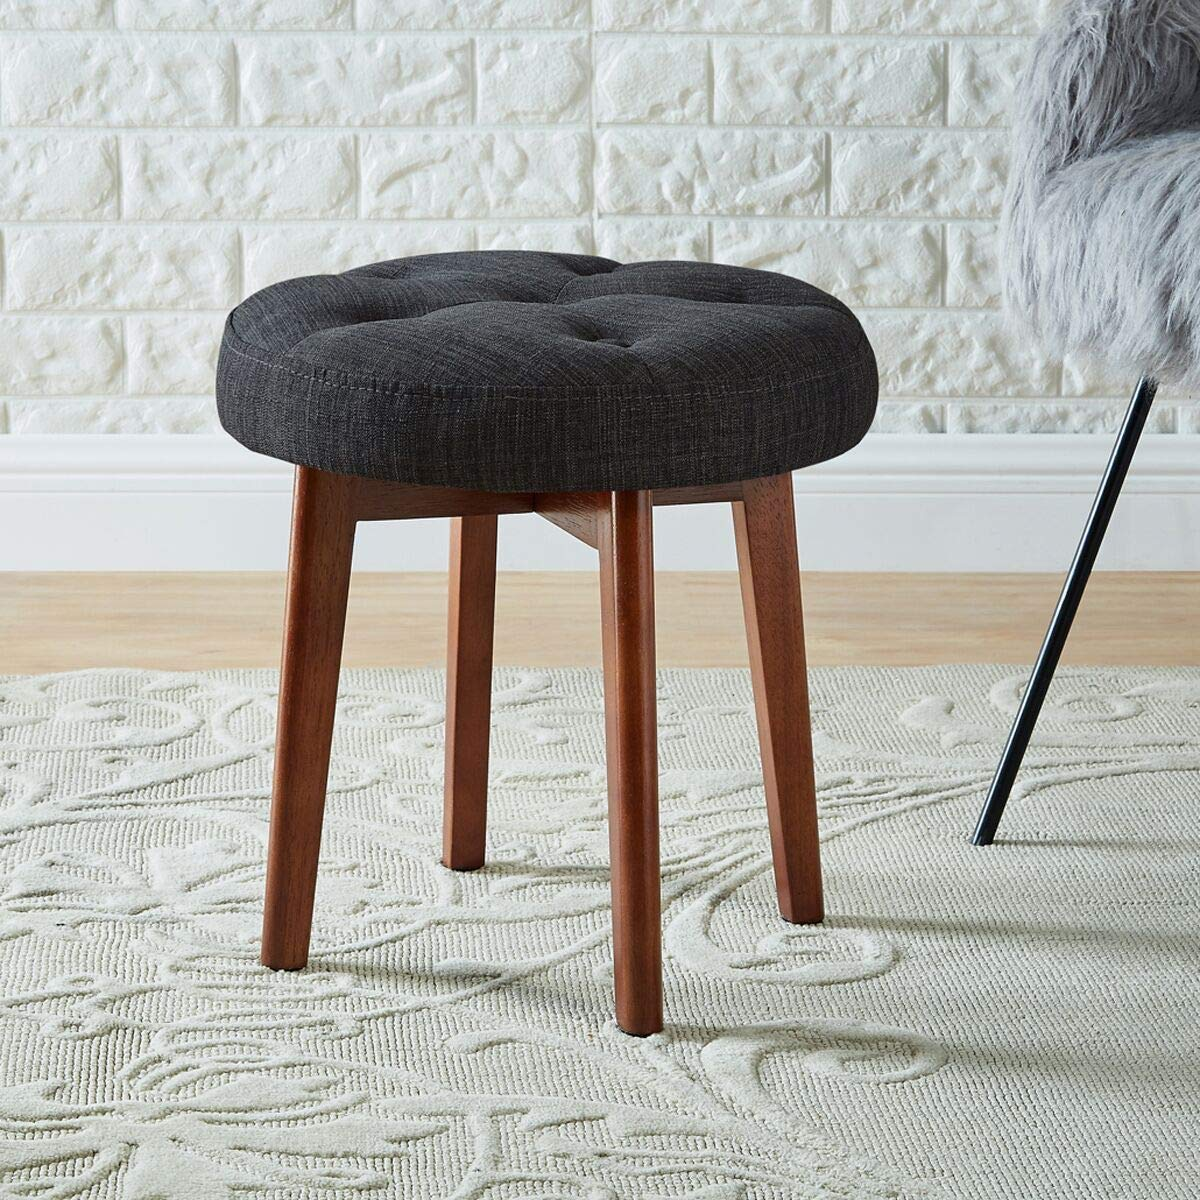 24KF Linen Tufted Round Ottoman with Solid Wood Leg, Upholstered Padded Stool – Dark Gray